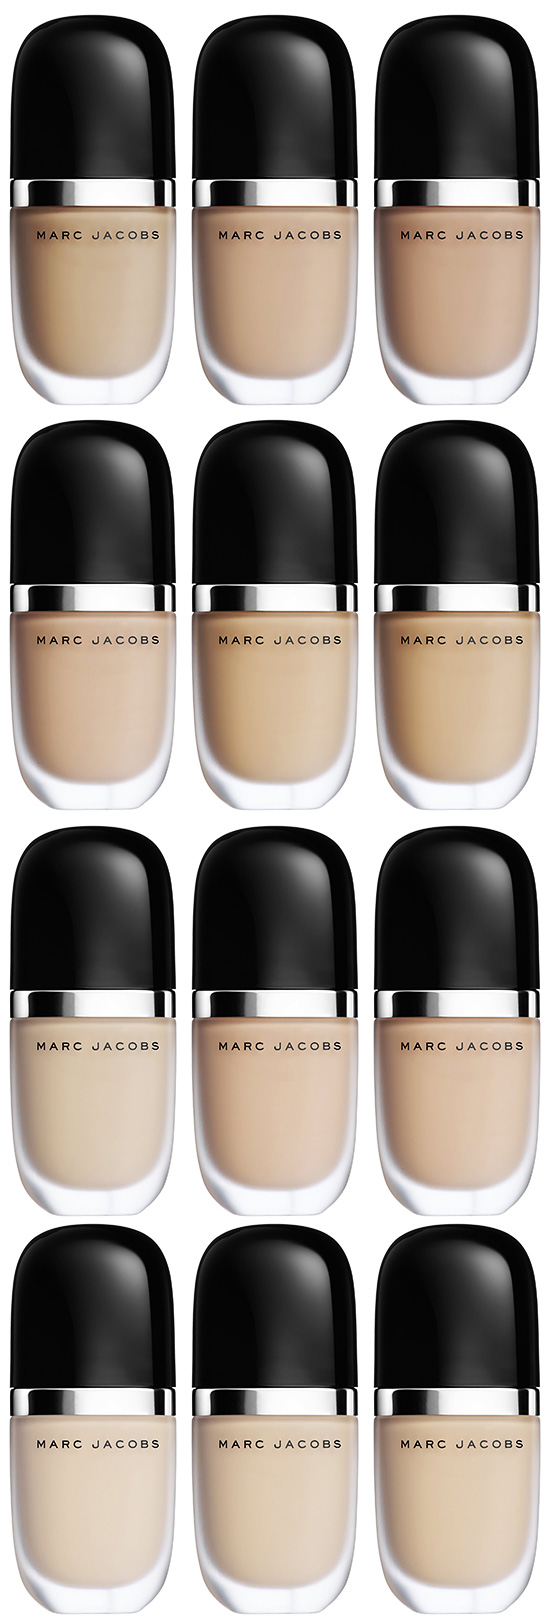 Marc-Jacobs-Fall-2013-Makeup-Collection-9